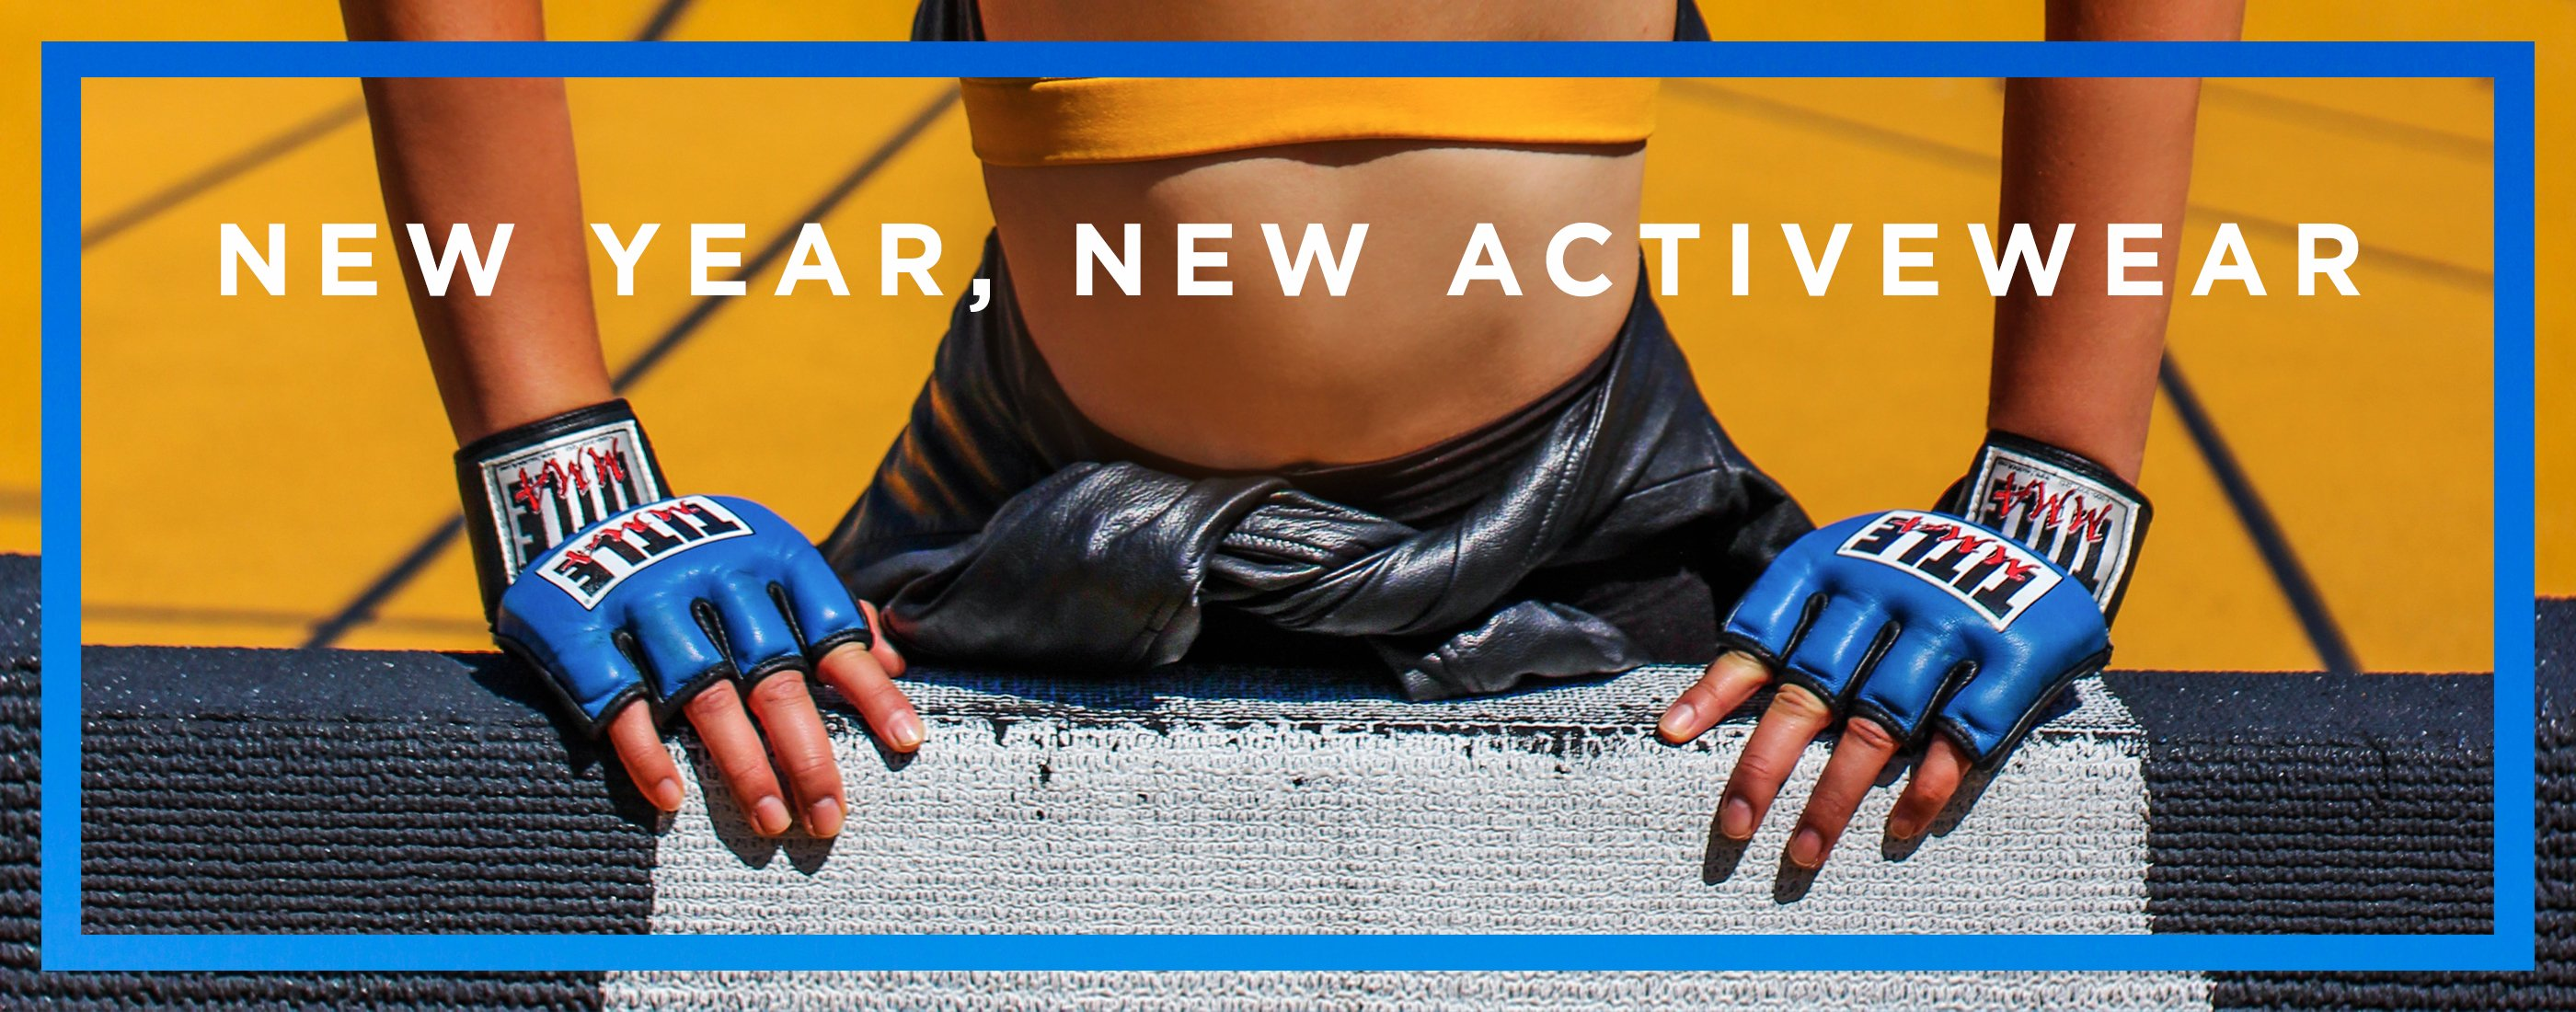 New Year, New Activewear